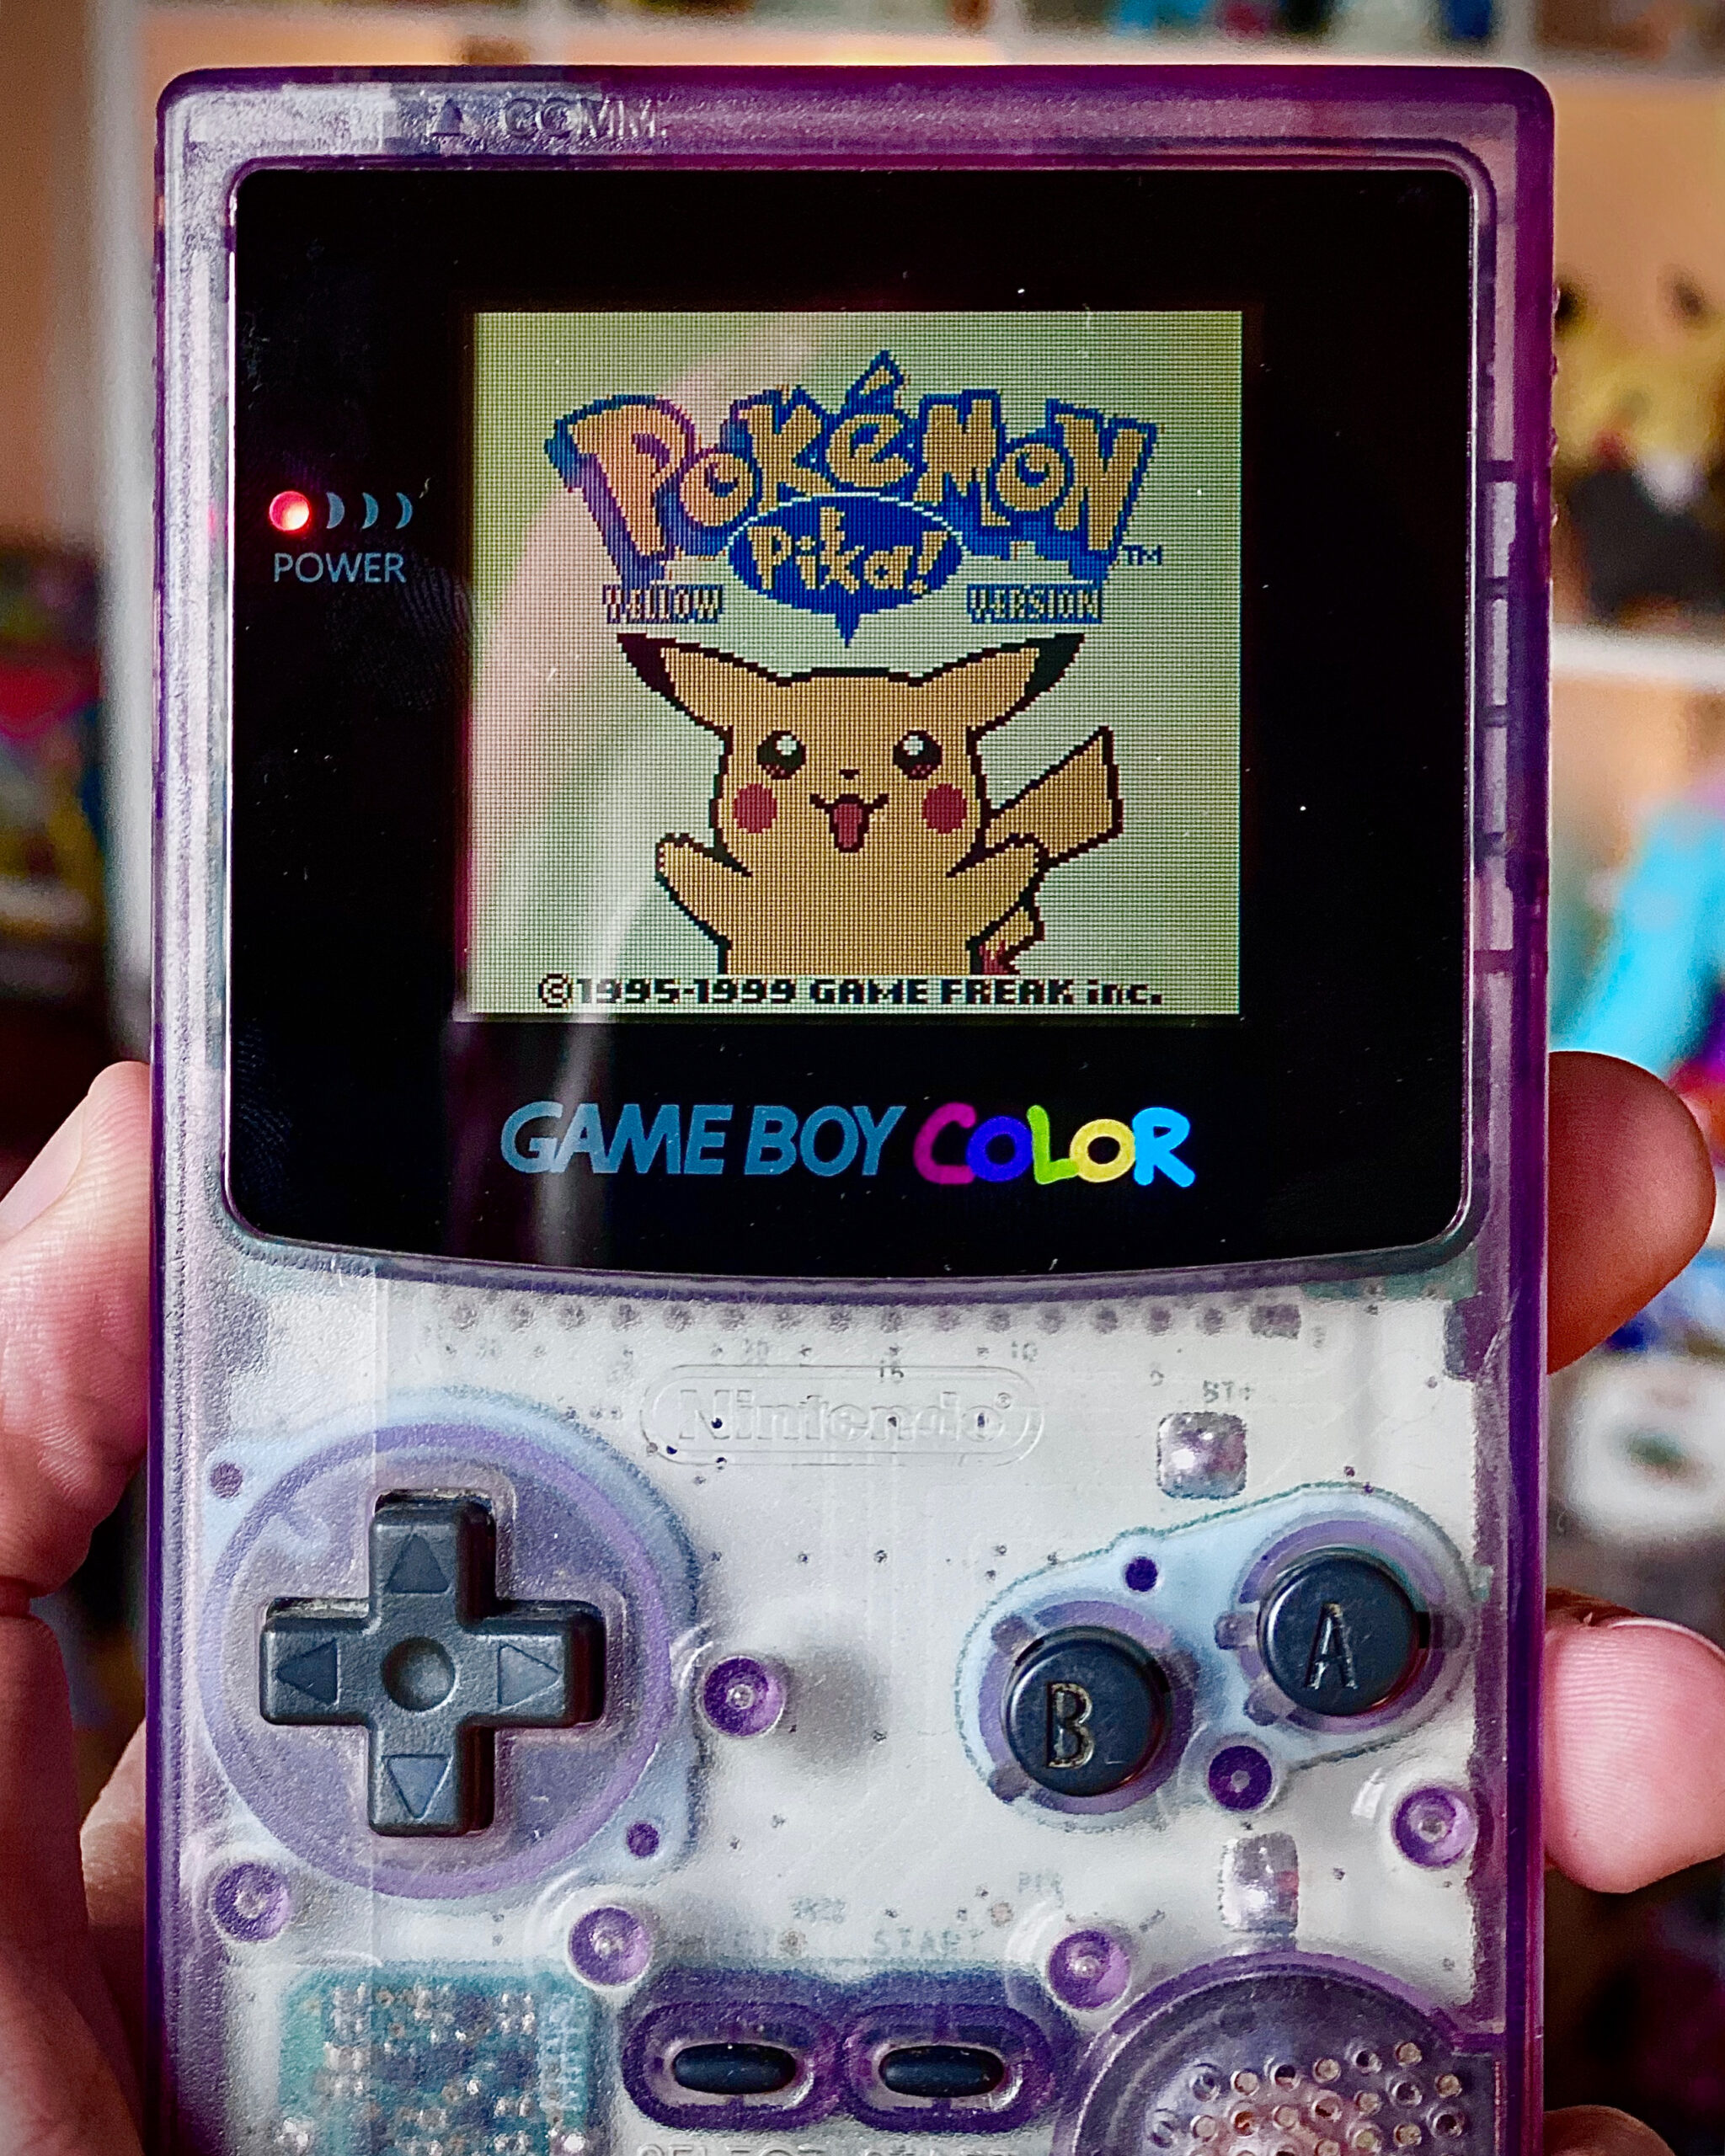 Pokémon Yellow Version GameBoy Color Cosmic Purple